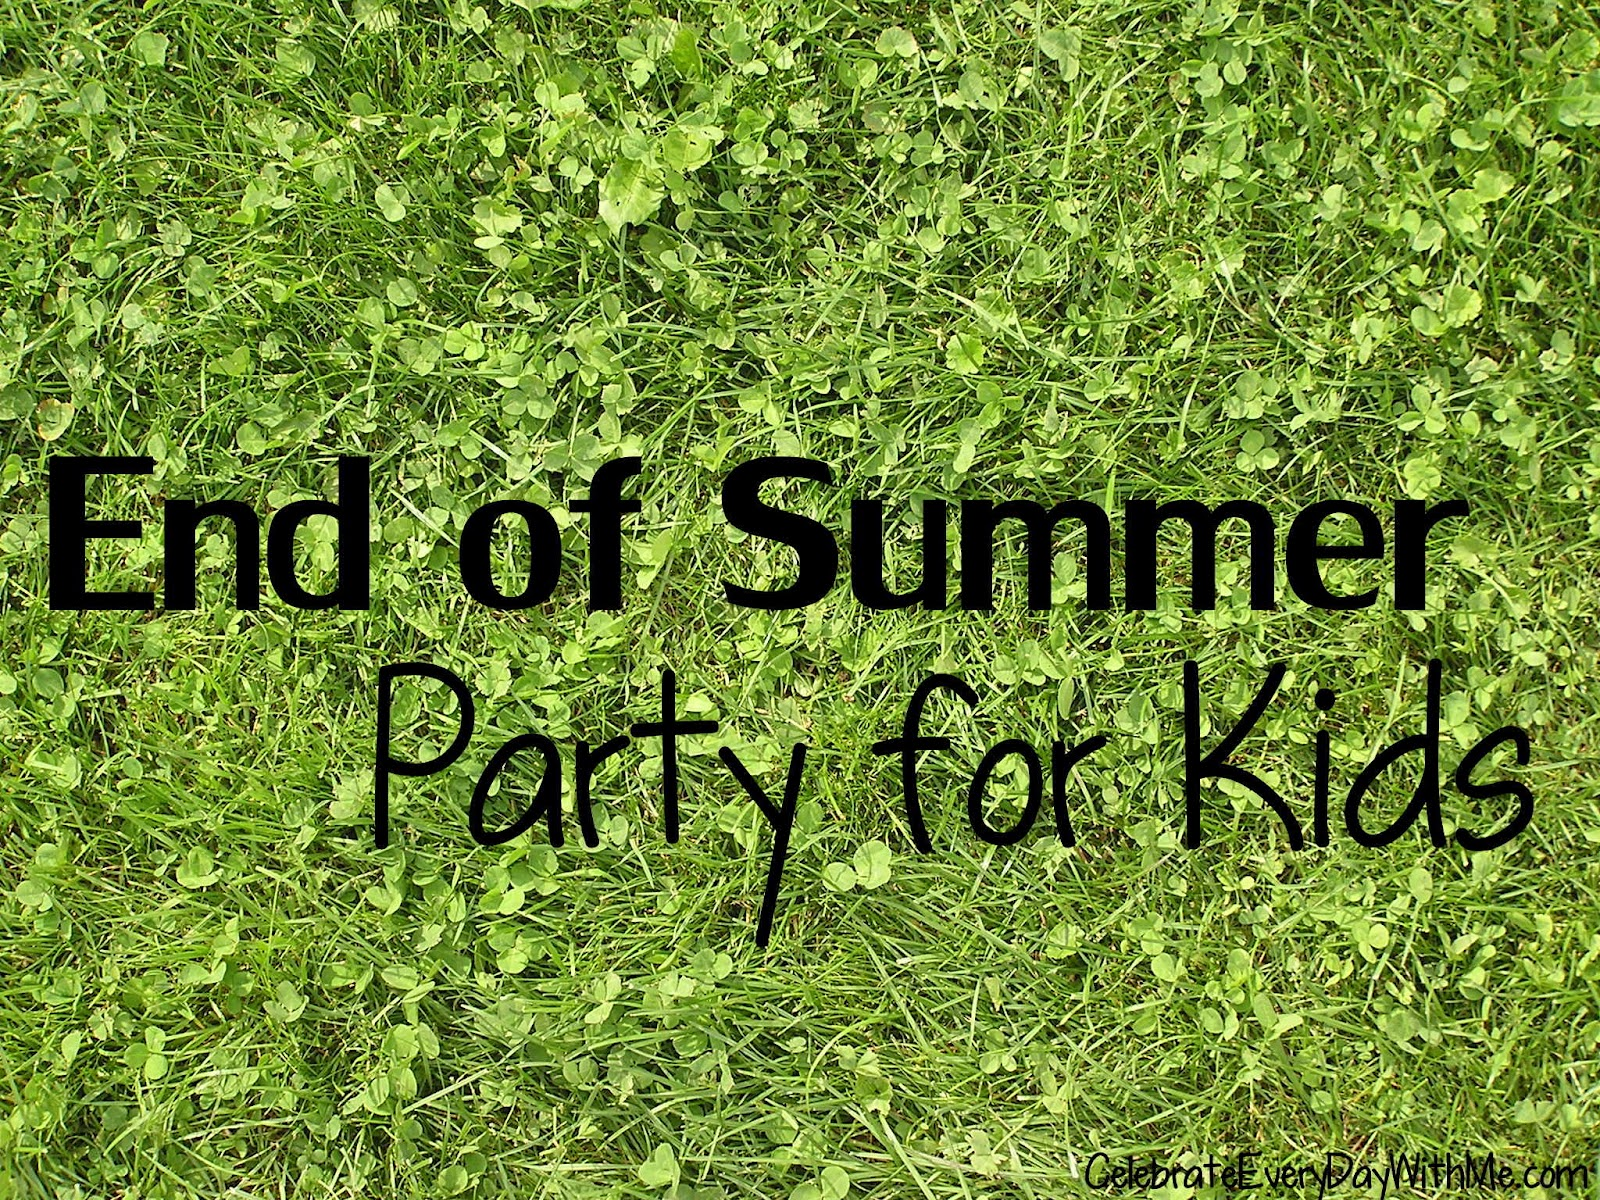 End-of-Summer Party for the Kids - Celebrate Every Day With Me